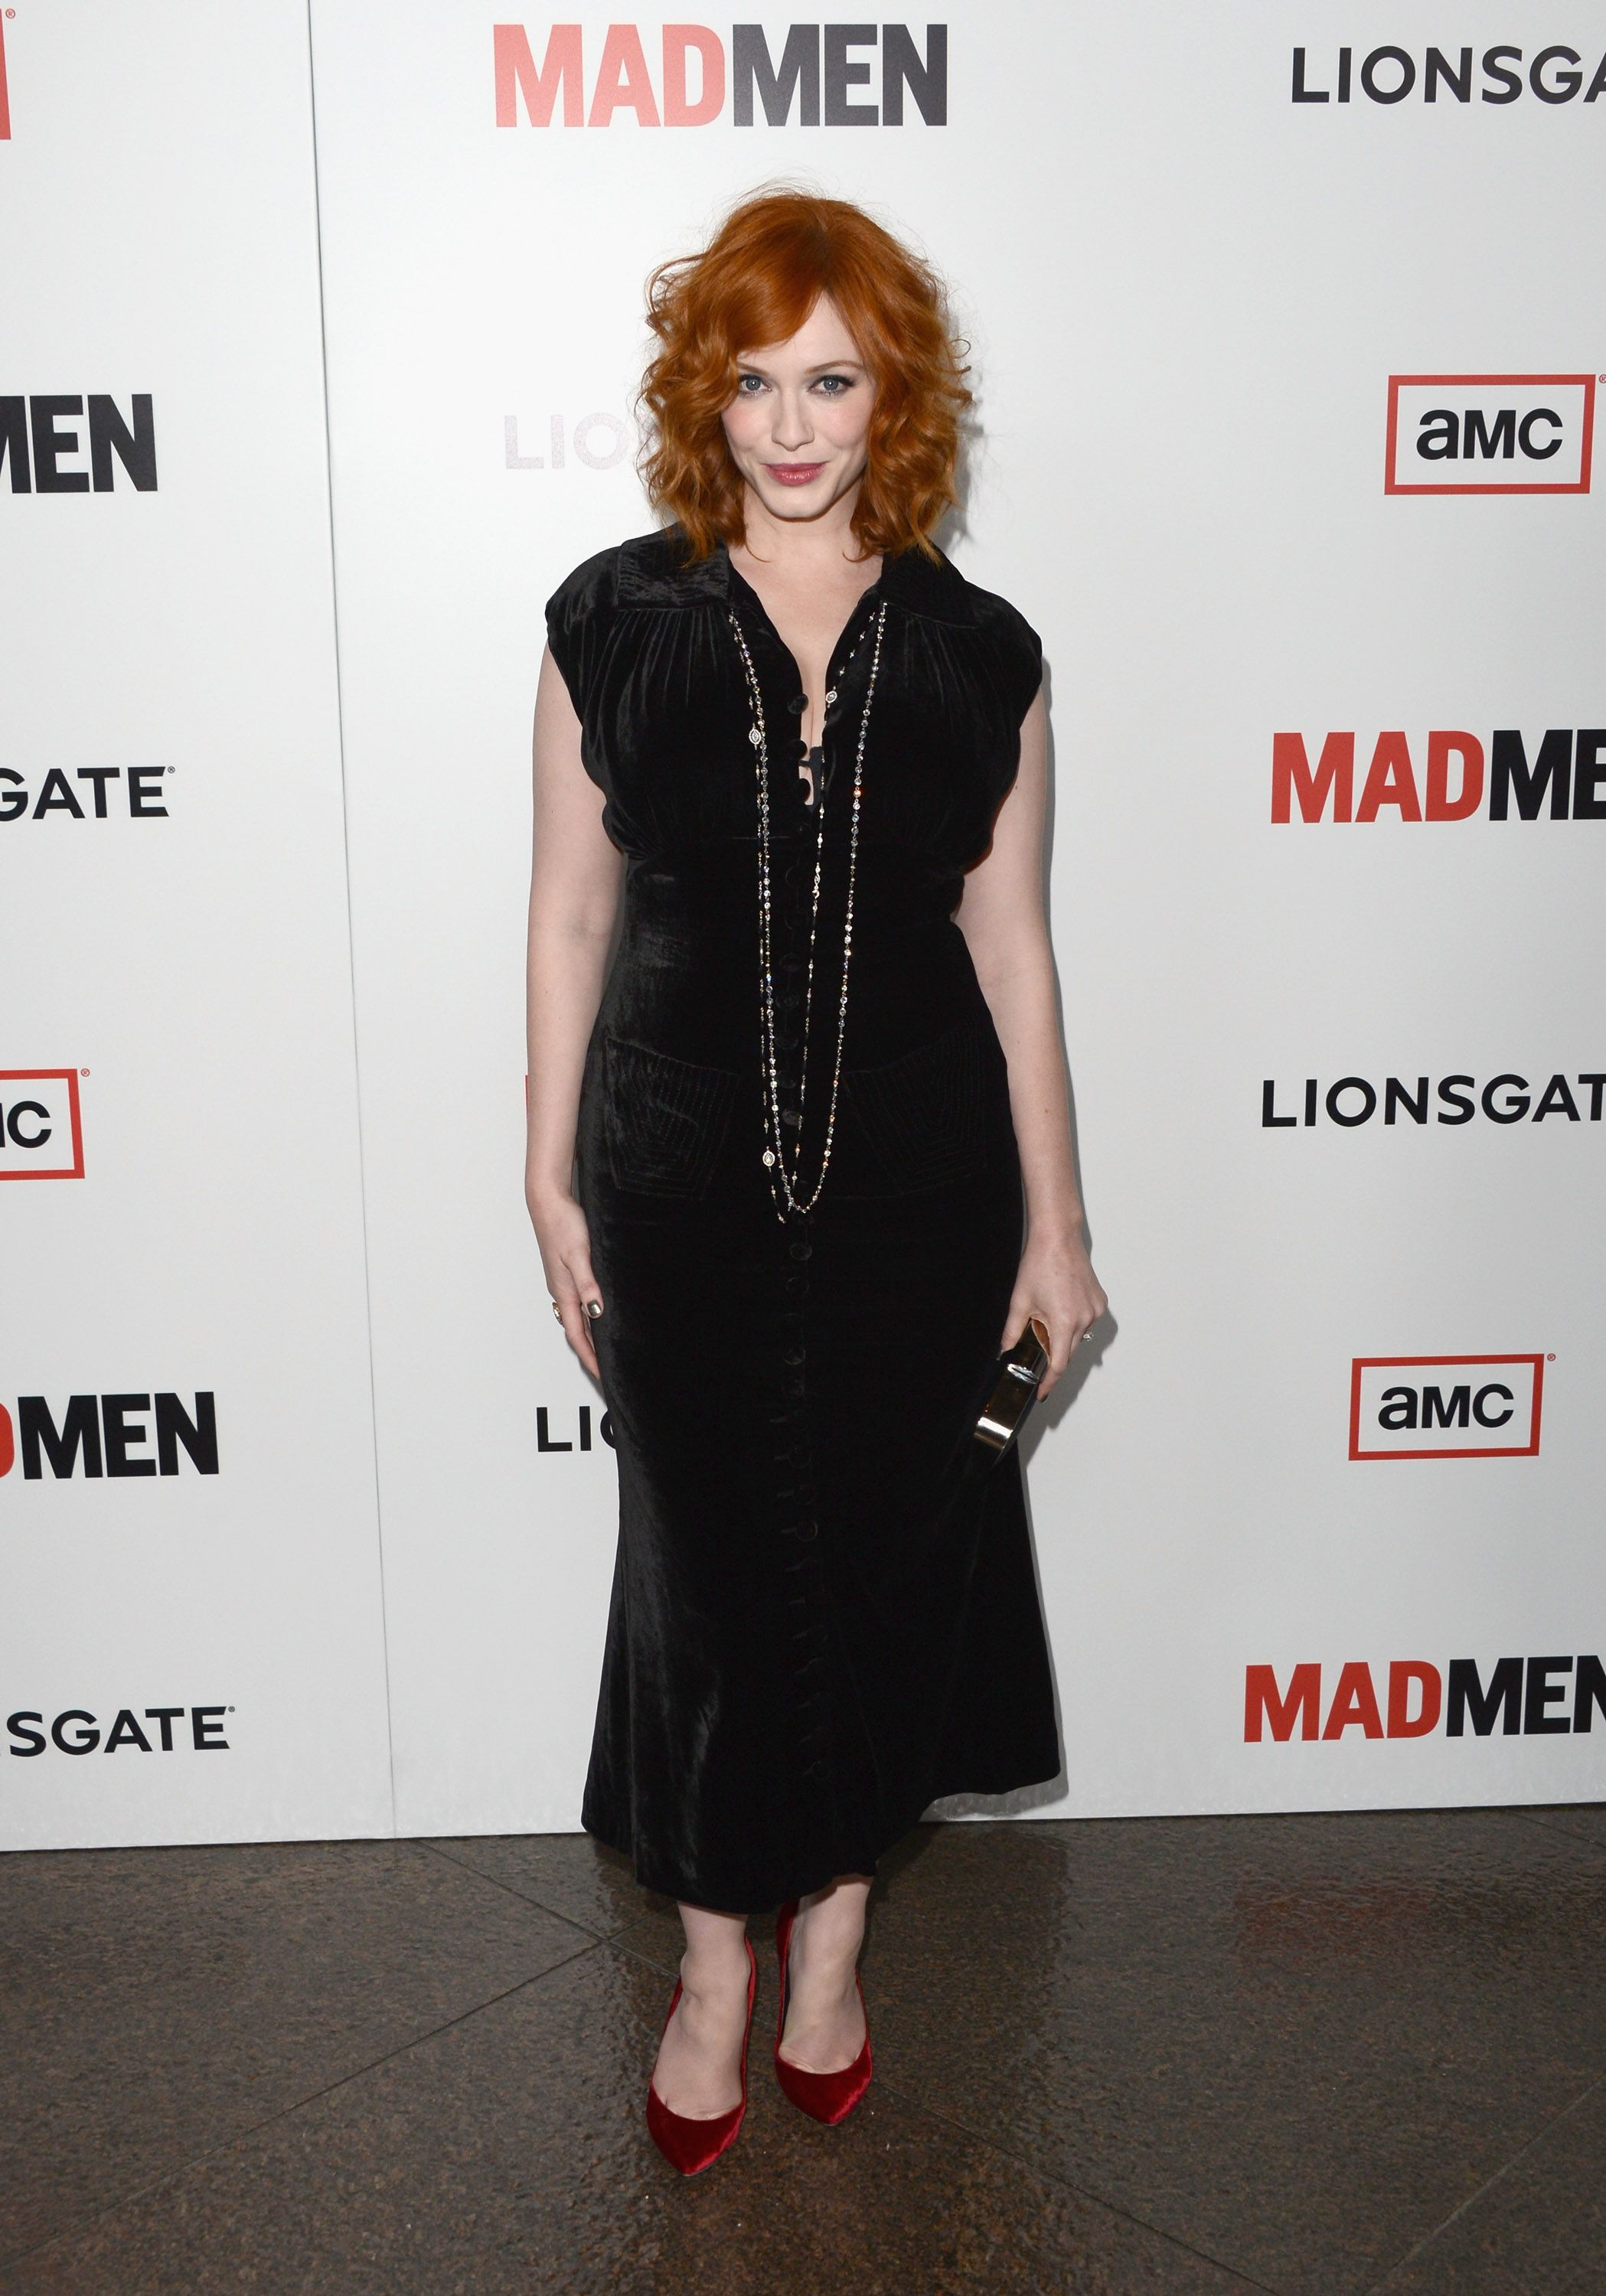 Mad Men\'s Leading Ladies Take the Spotlight at Season Six Premiere